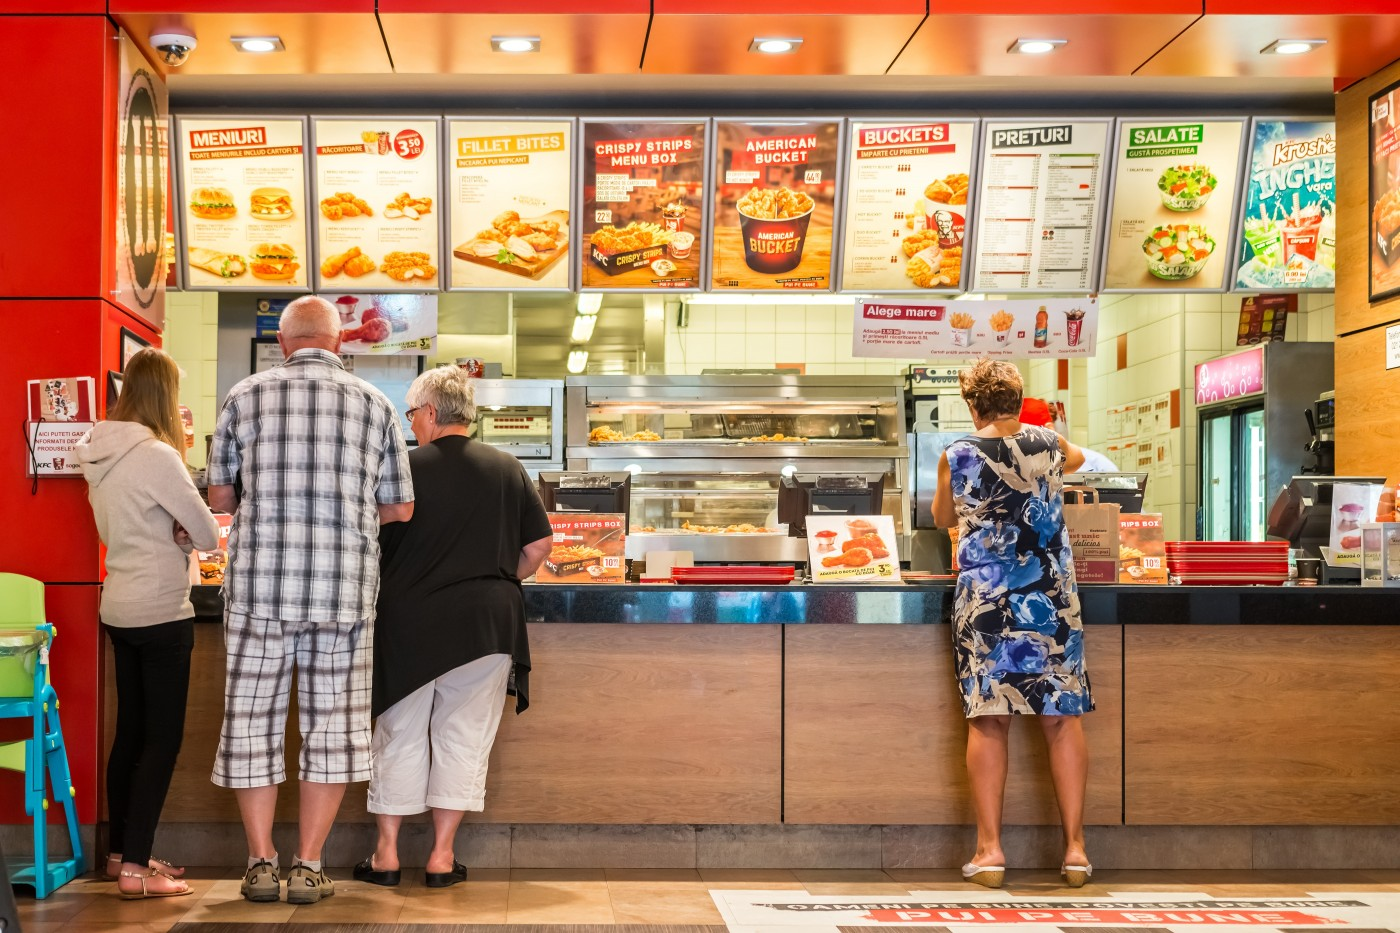 Takeaway Outlet Increase in UK Promotes Obesity, Especially in Poorer Areas